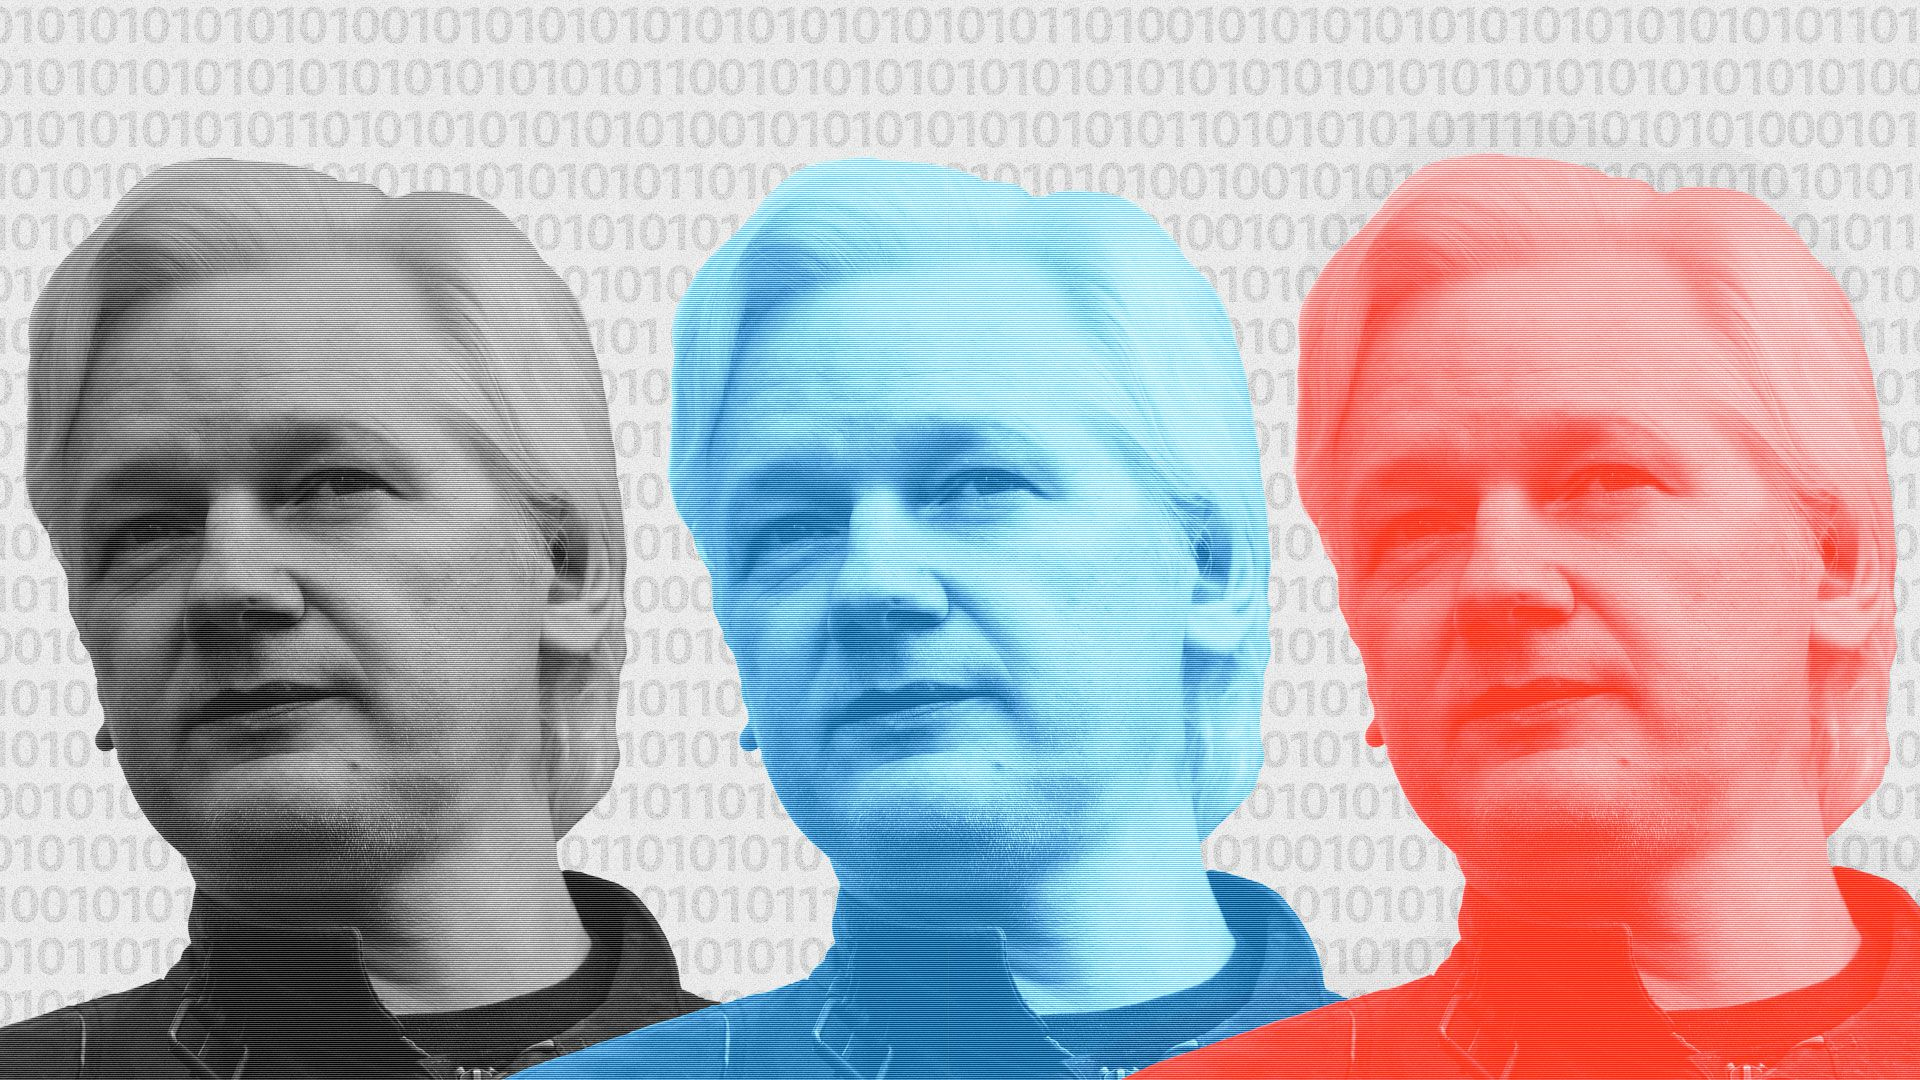 Three different colored images of Julian Assange's head